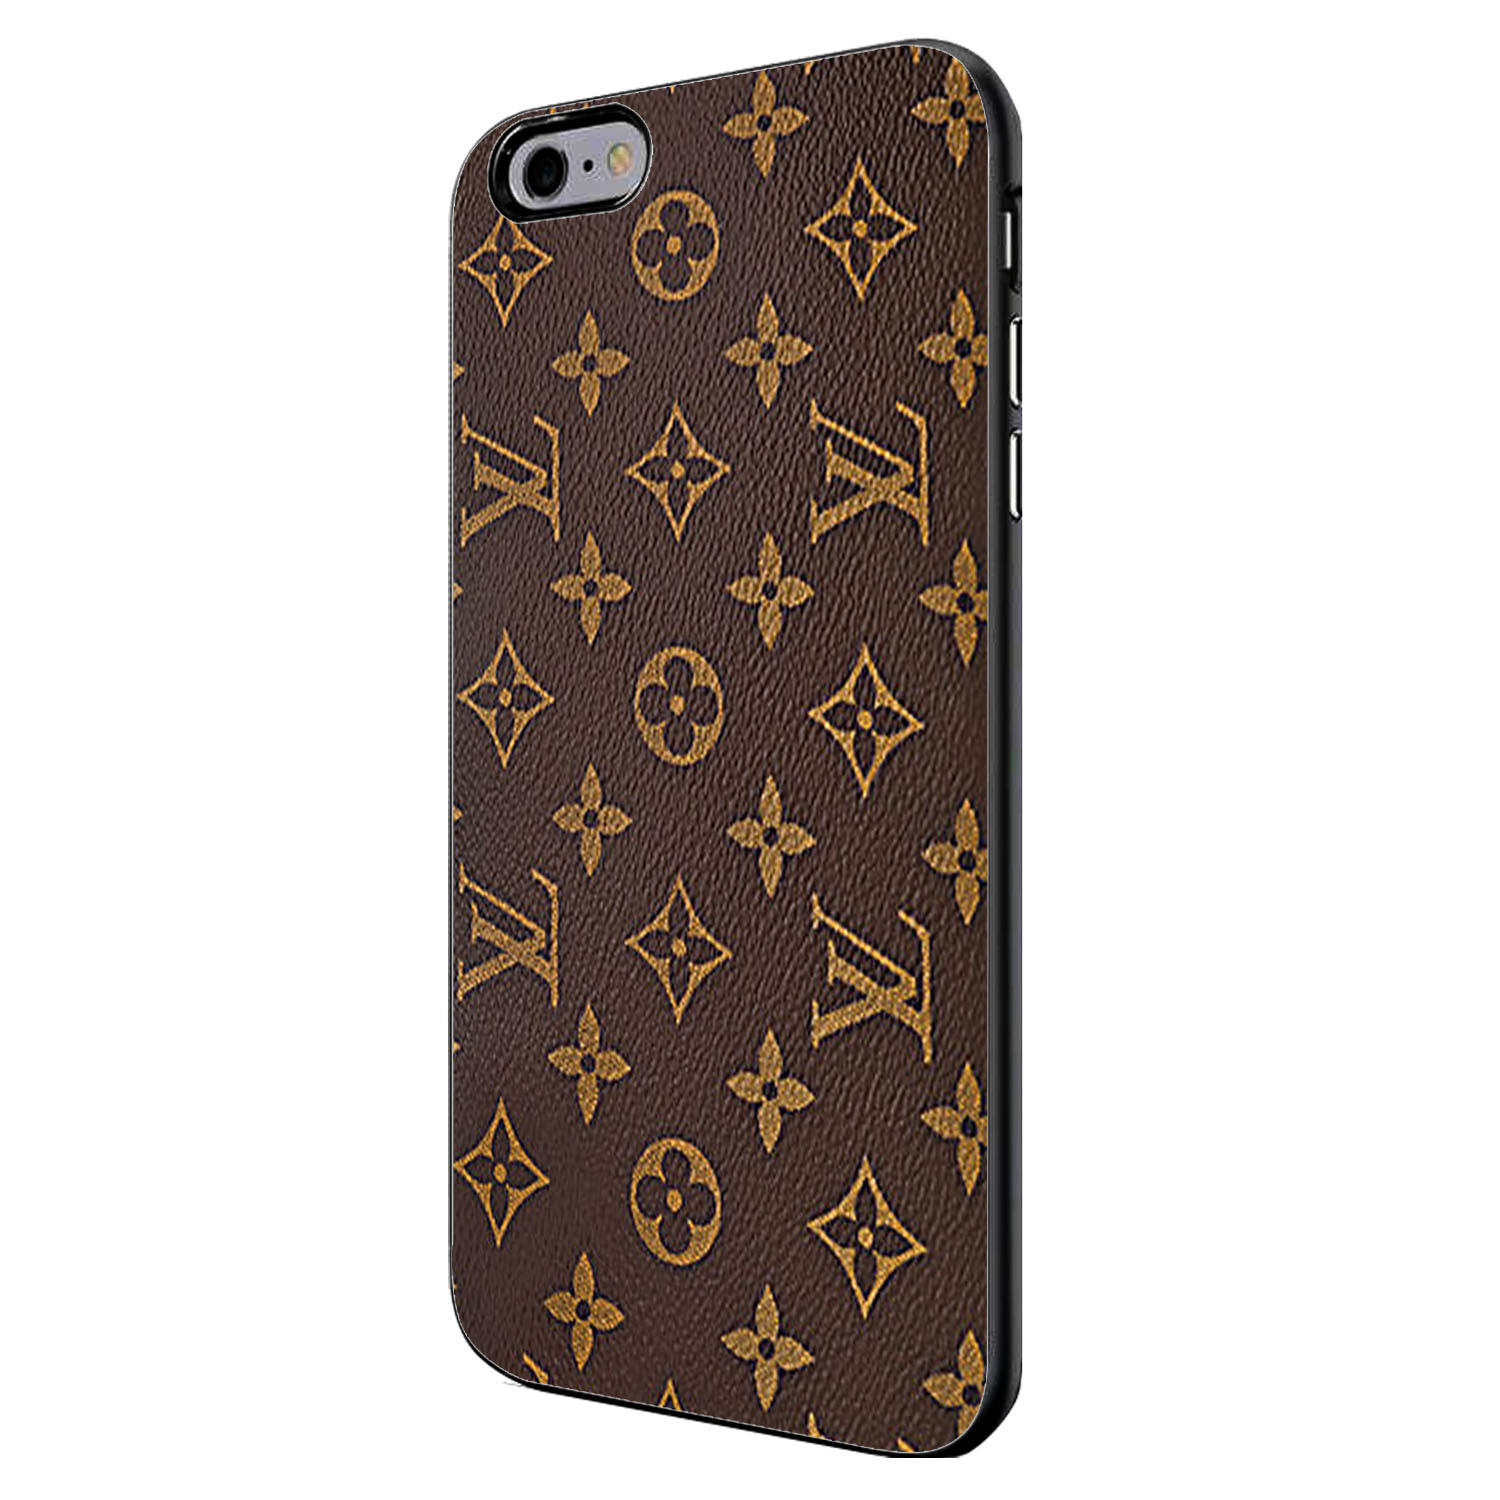 https://static2.artfire.com/uploads/product/2/472/56472/6056472/6056472/large/photo_louis_vuitton_pattern_design_for_iphone_4_or_4s_case_0327cca4.jpg